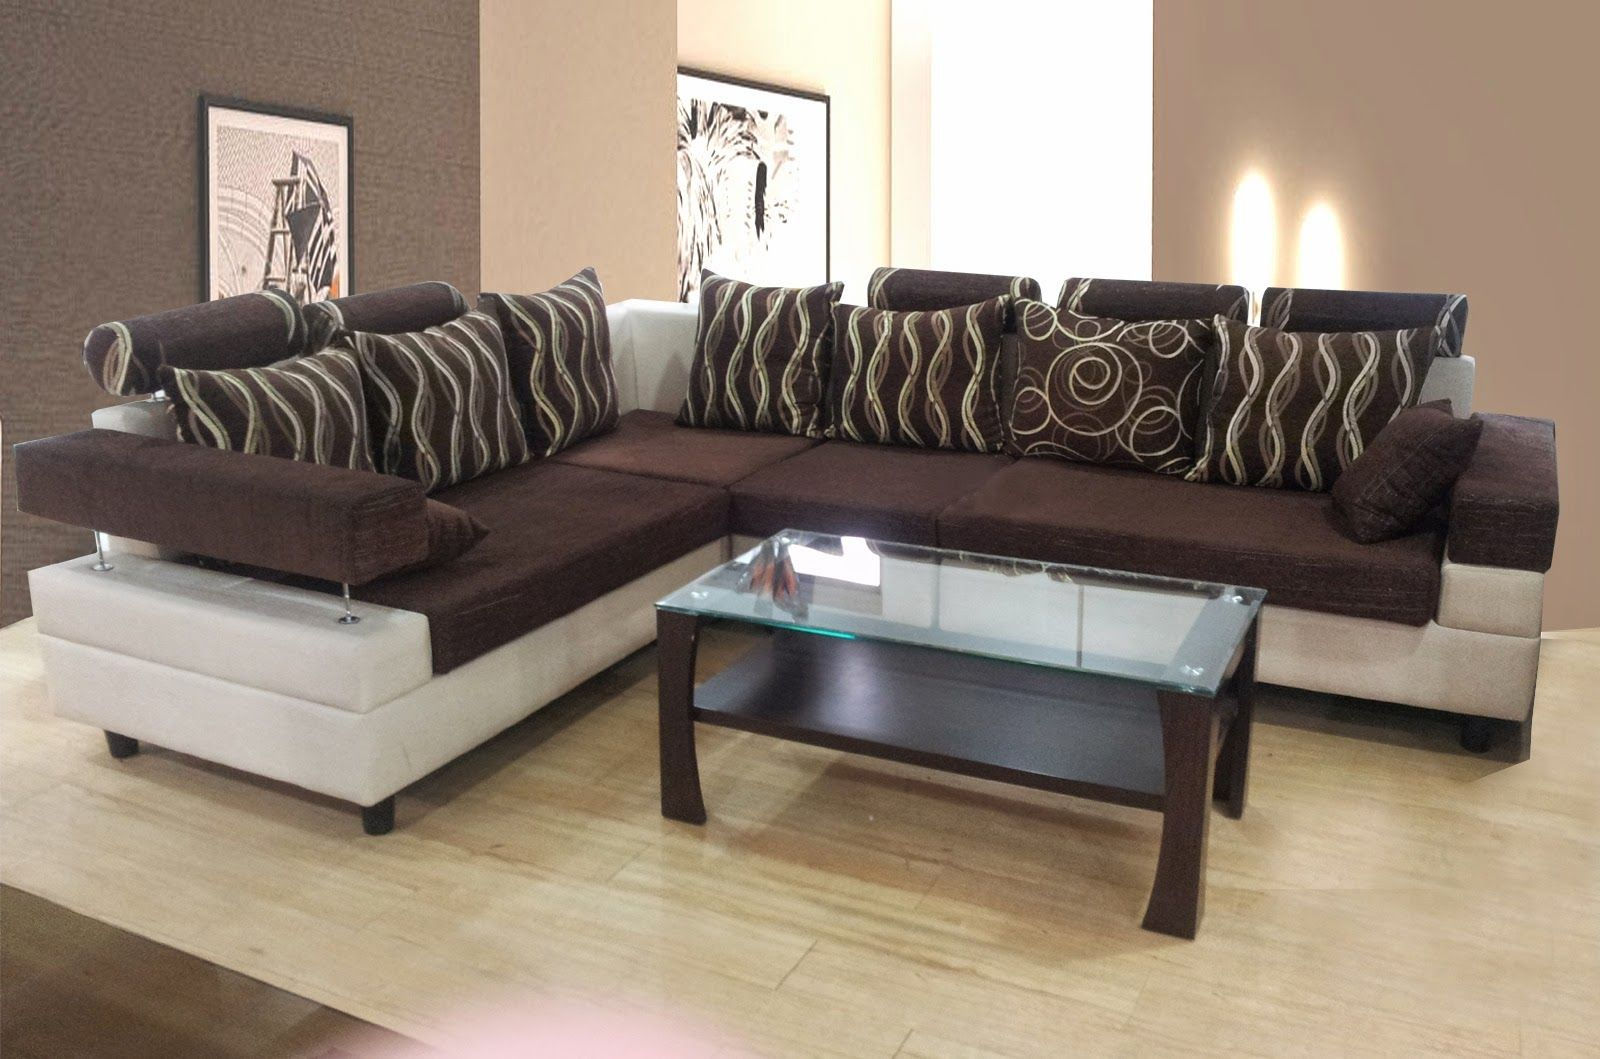 Nairobi luxe sofa sets welcome to nairobi luxe furniture Room and board furniture quality